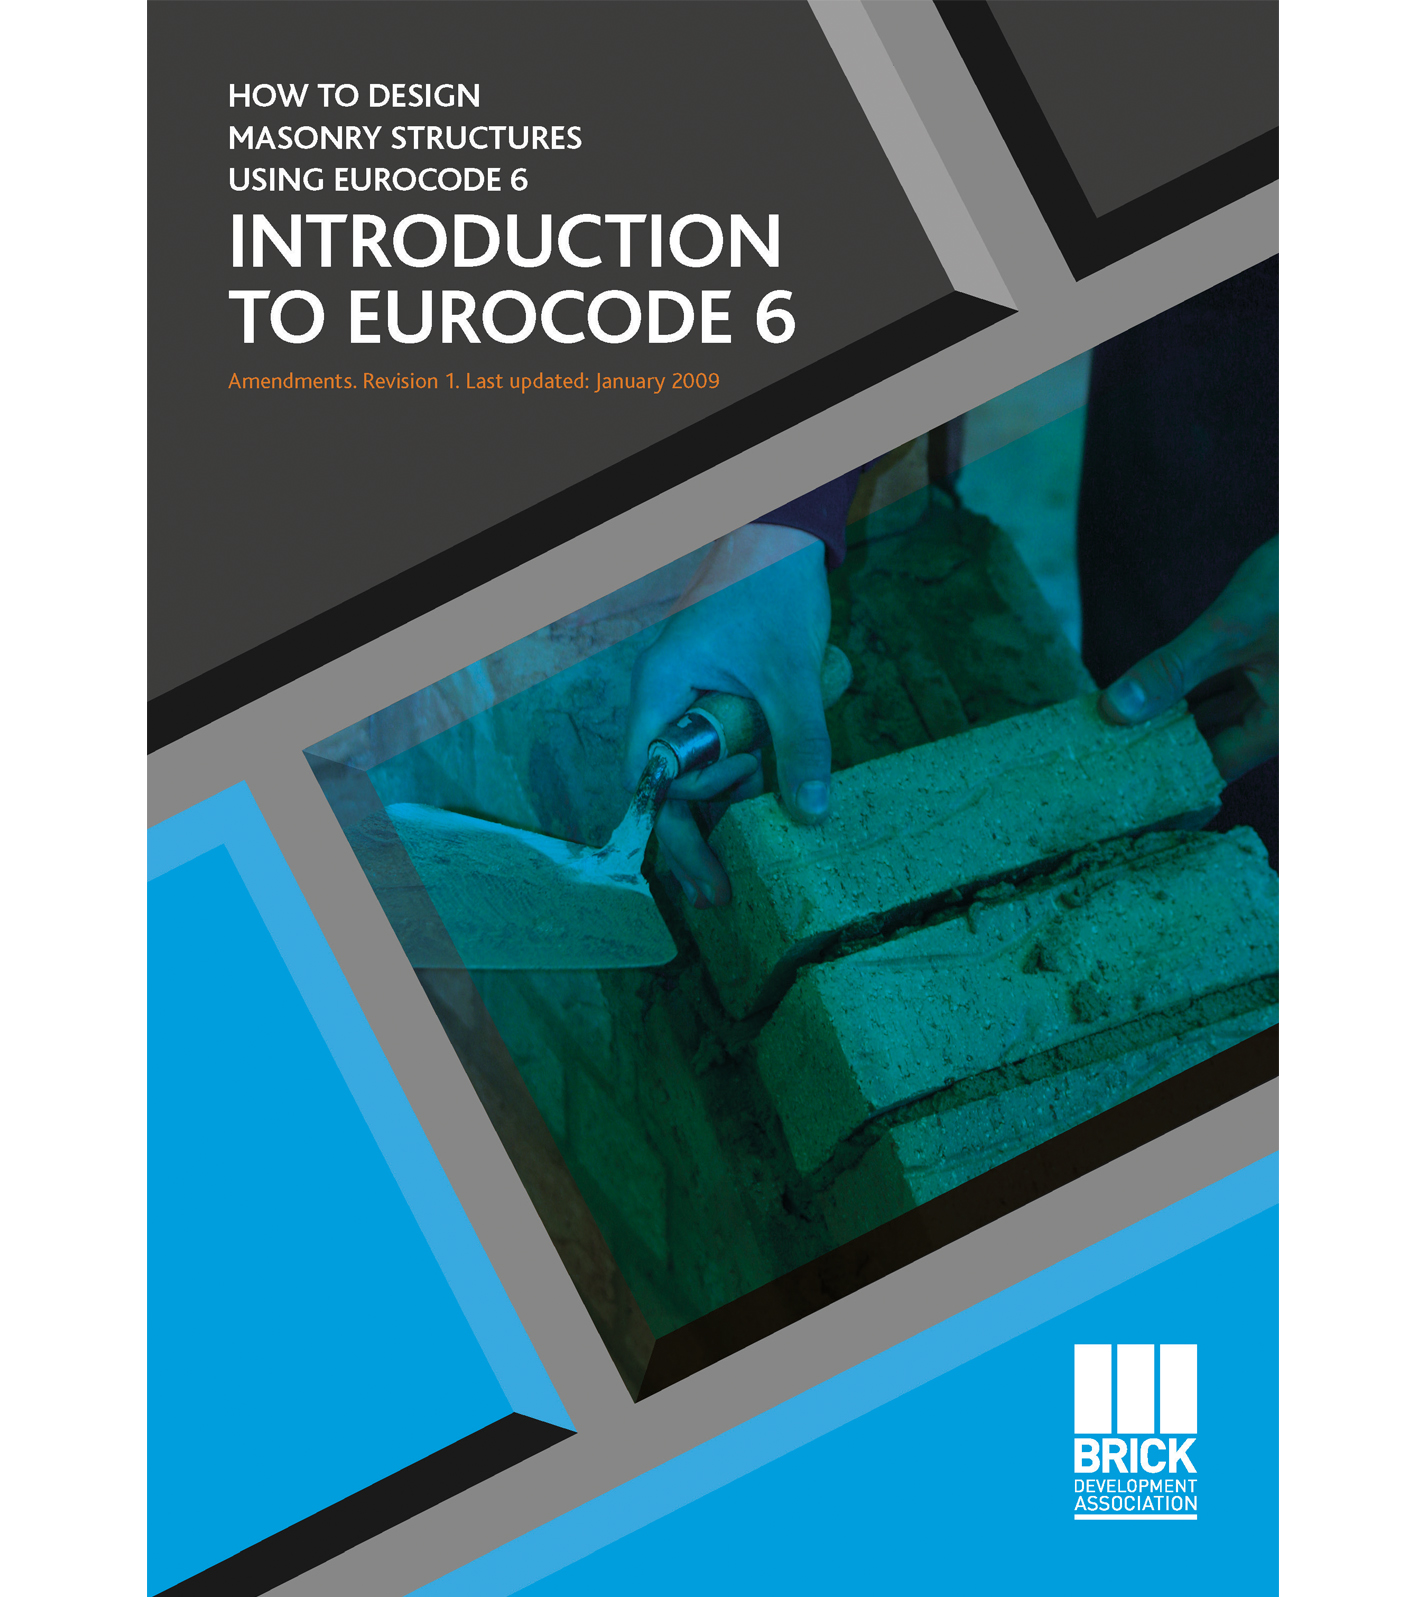 INTRODUCTION TO EUROCODE 6 (AMENDMENTS)